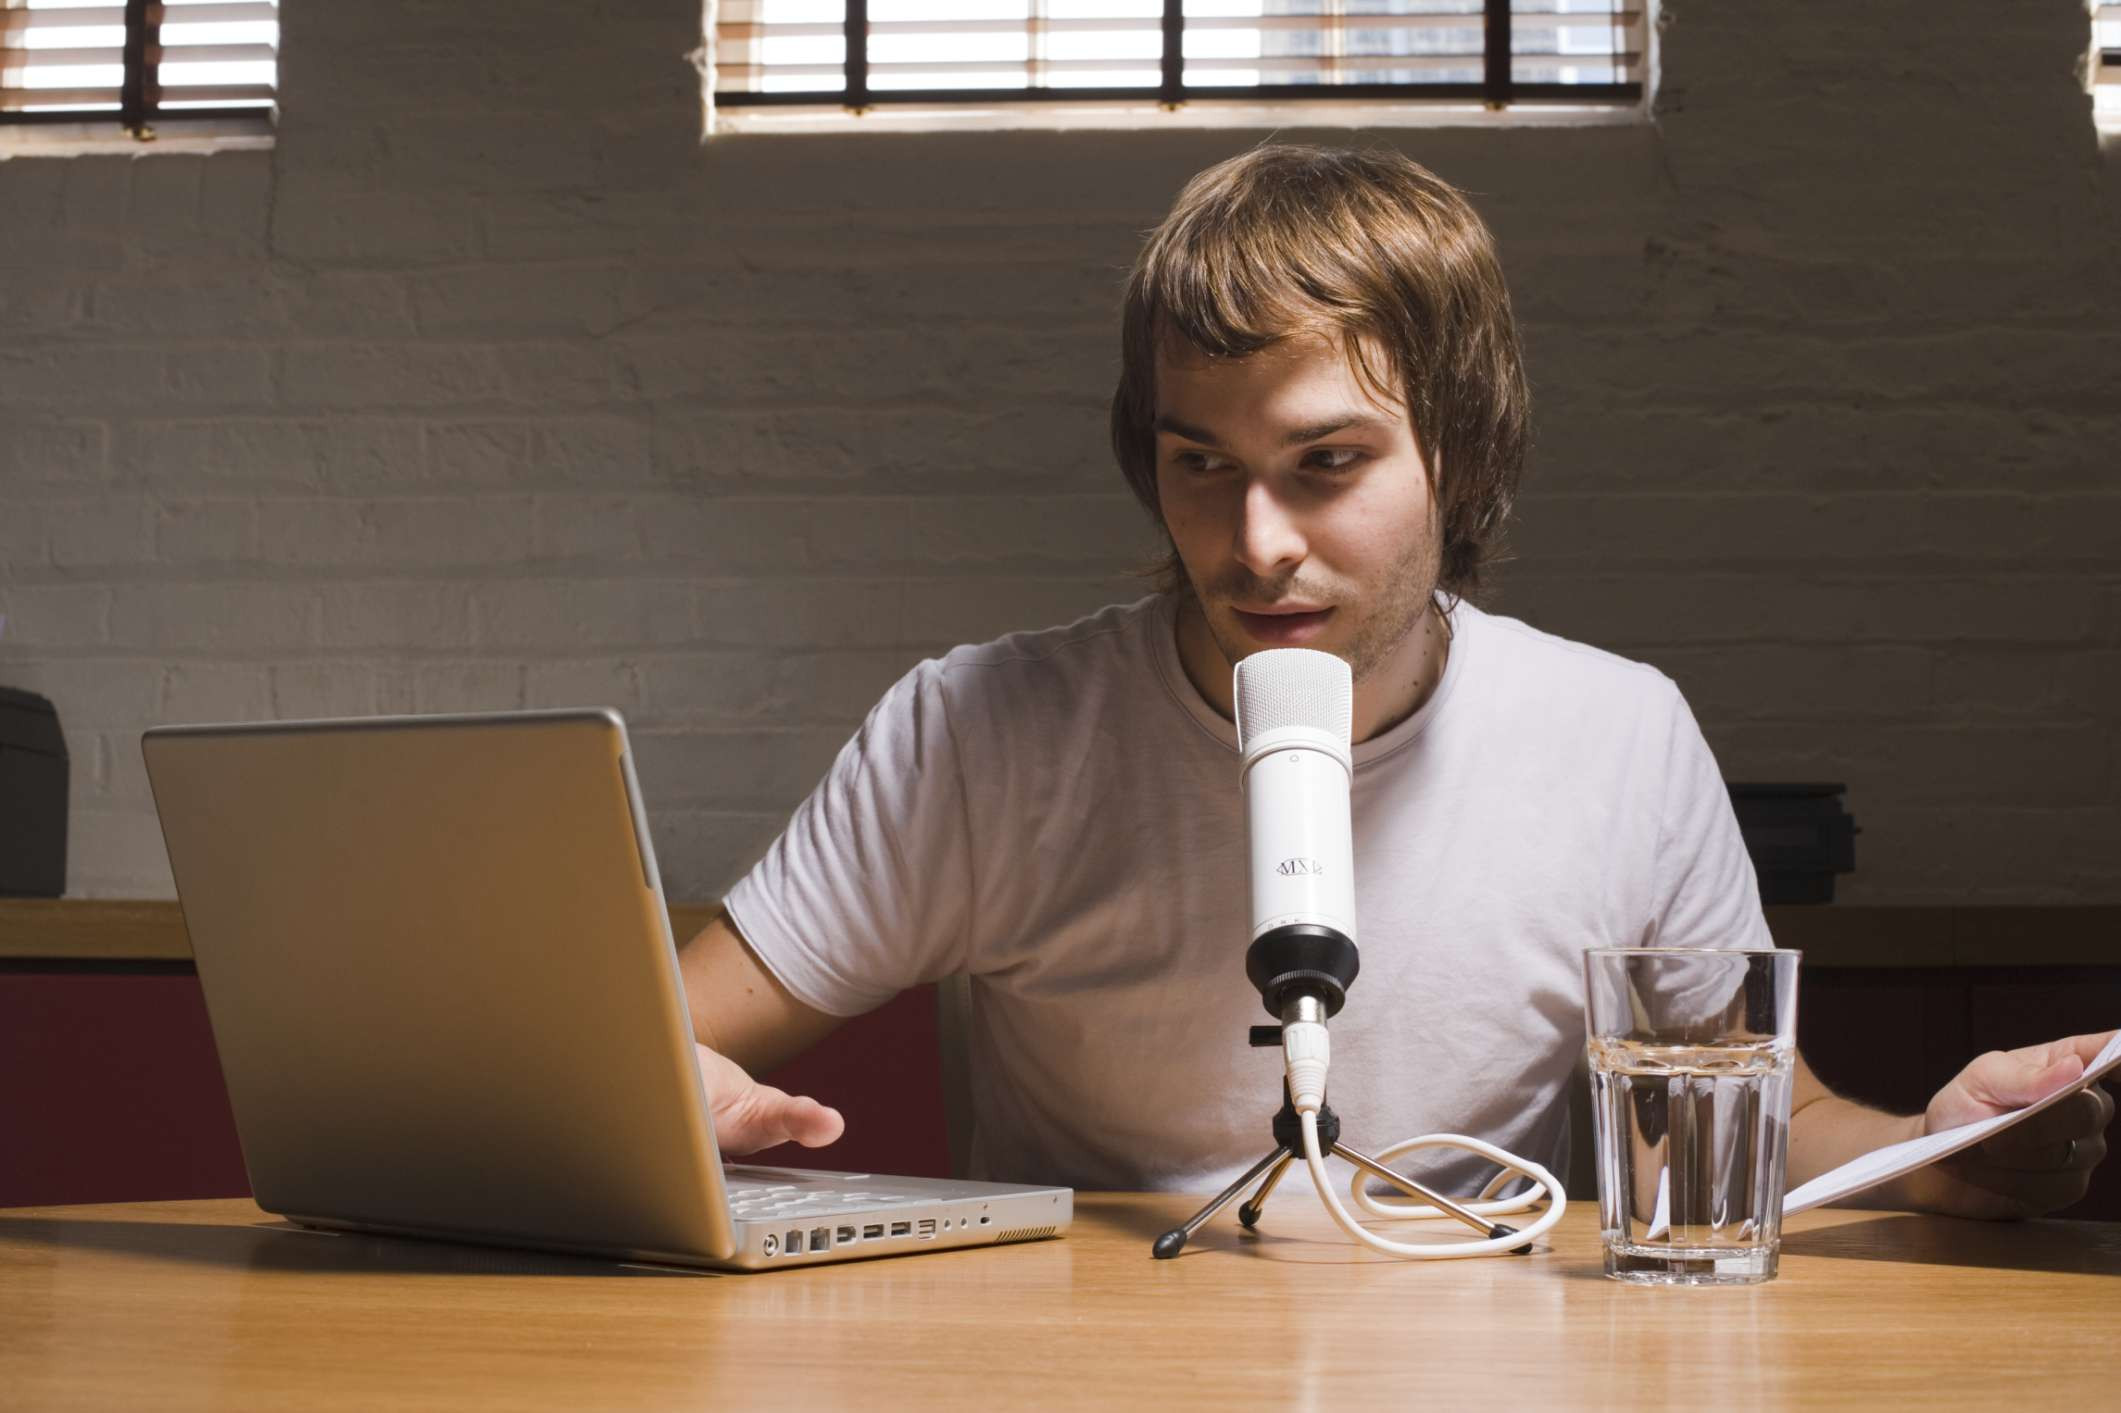 Man podcasting with laptop and mic